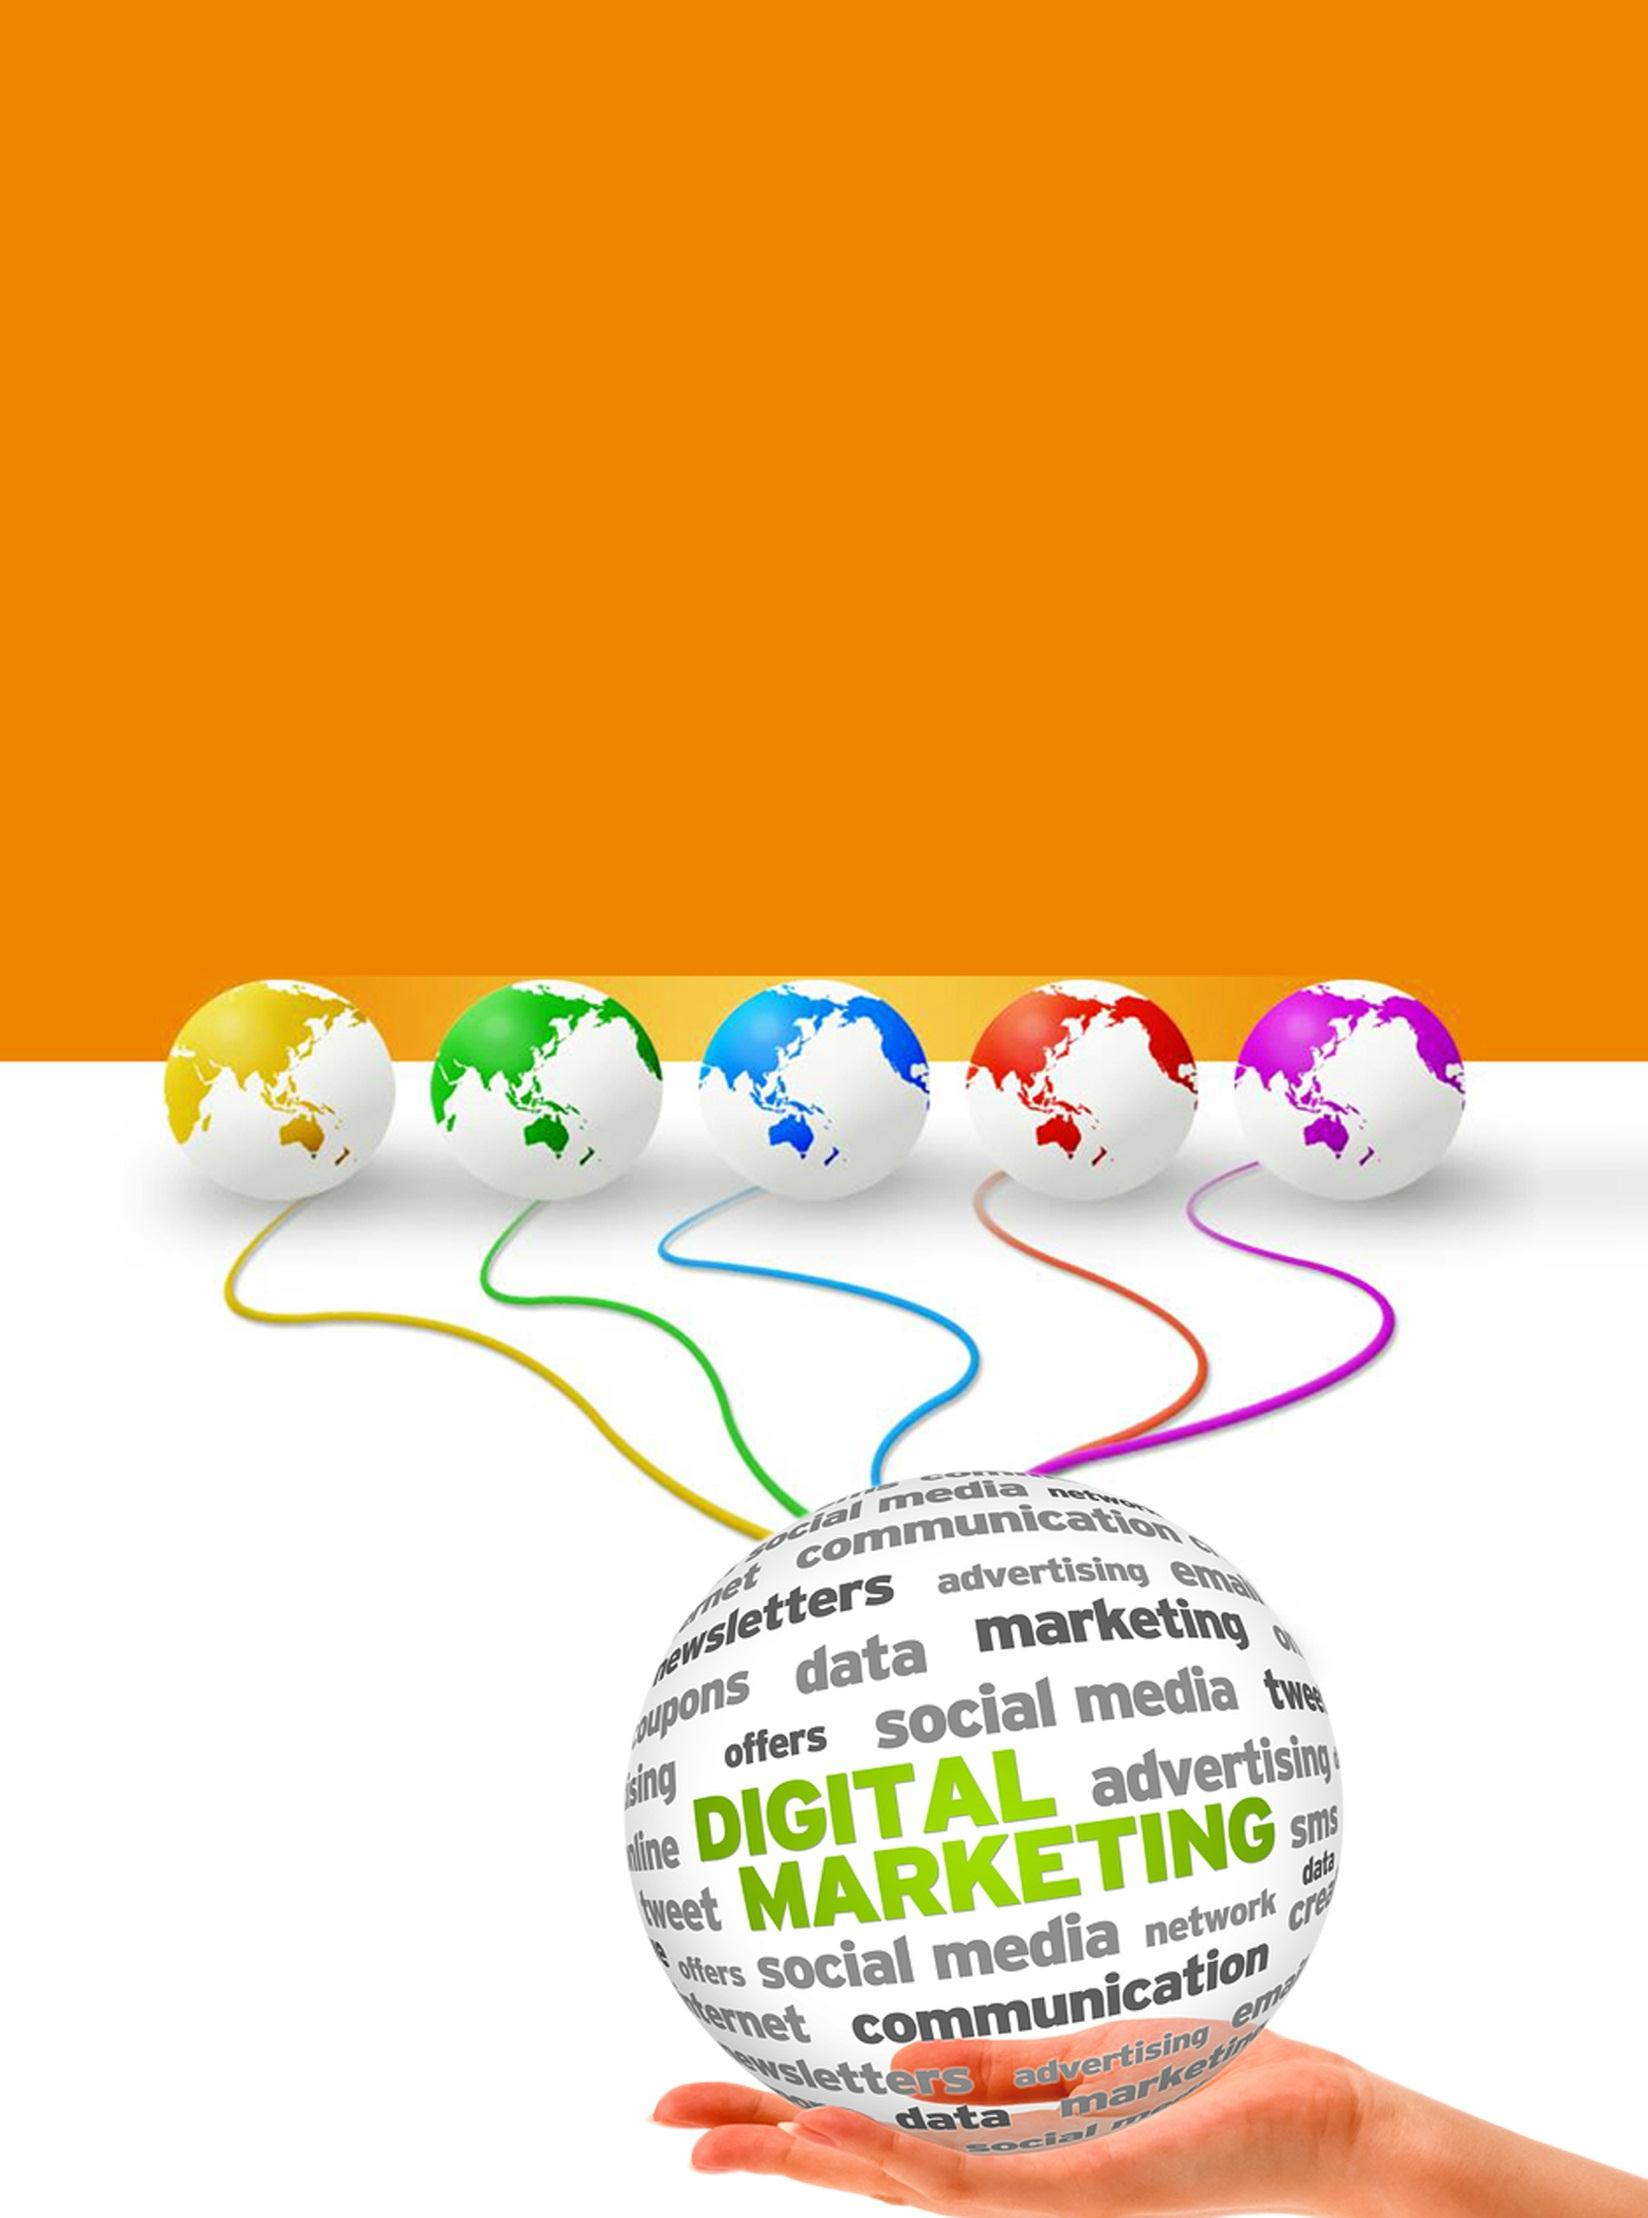 Become a Digital Marketing